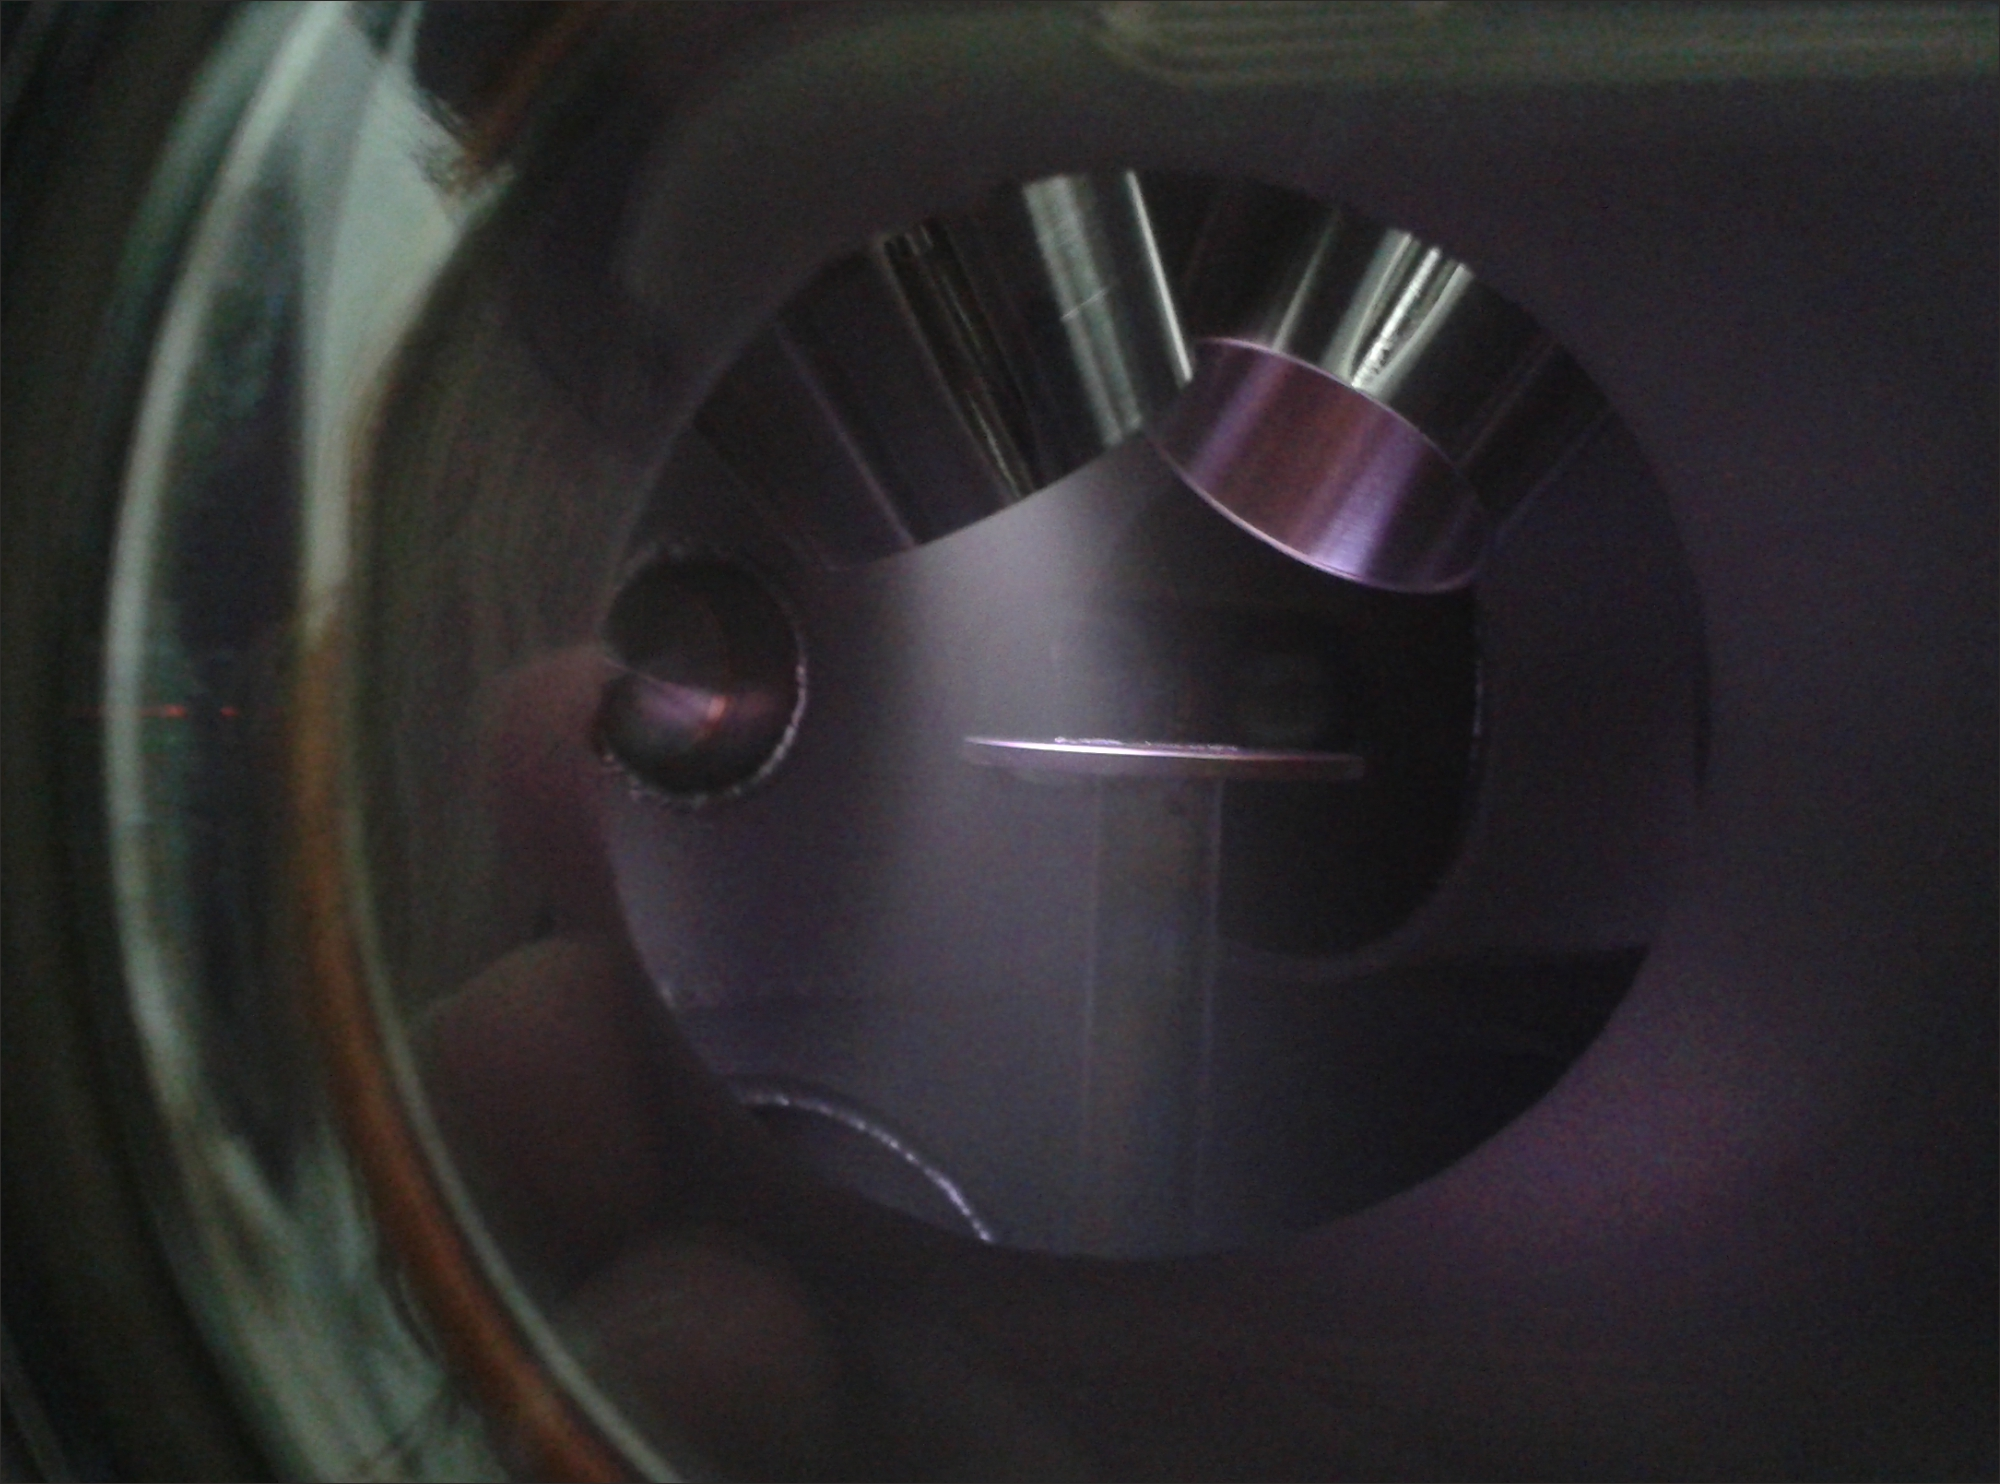 Copper-target in vacuum chamber